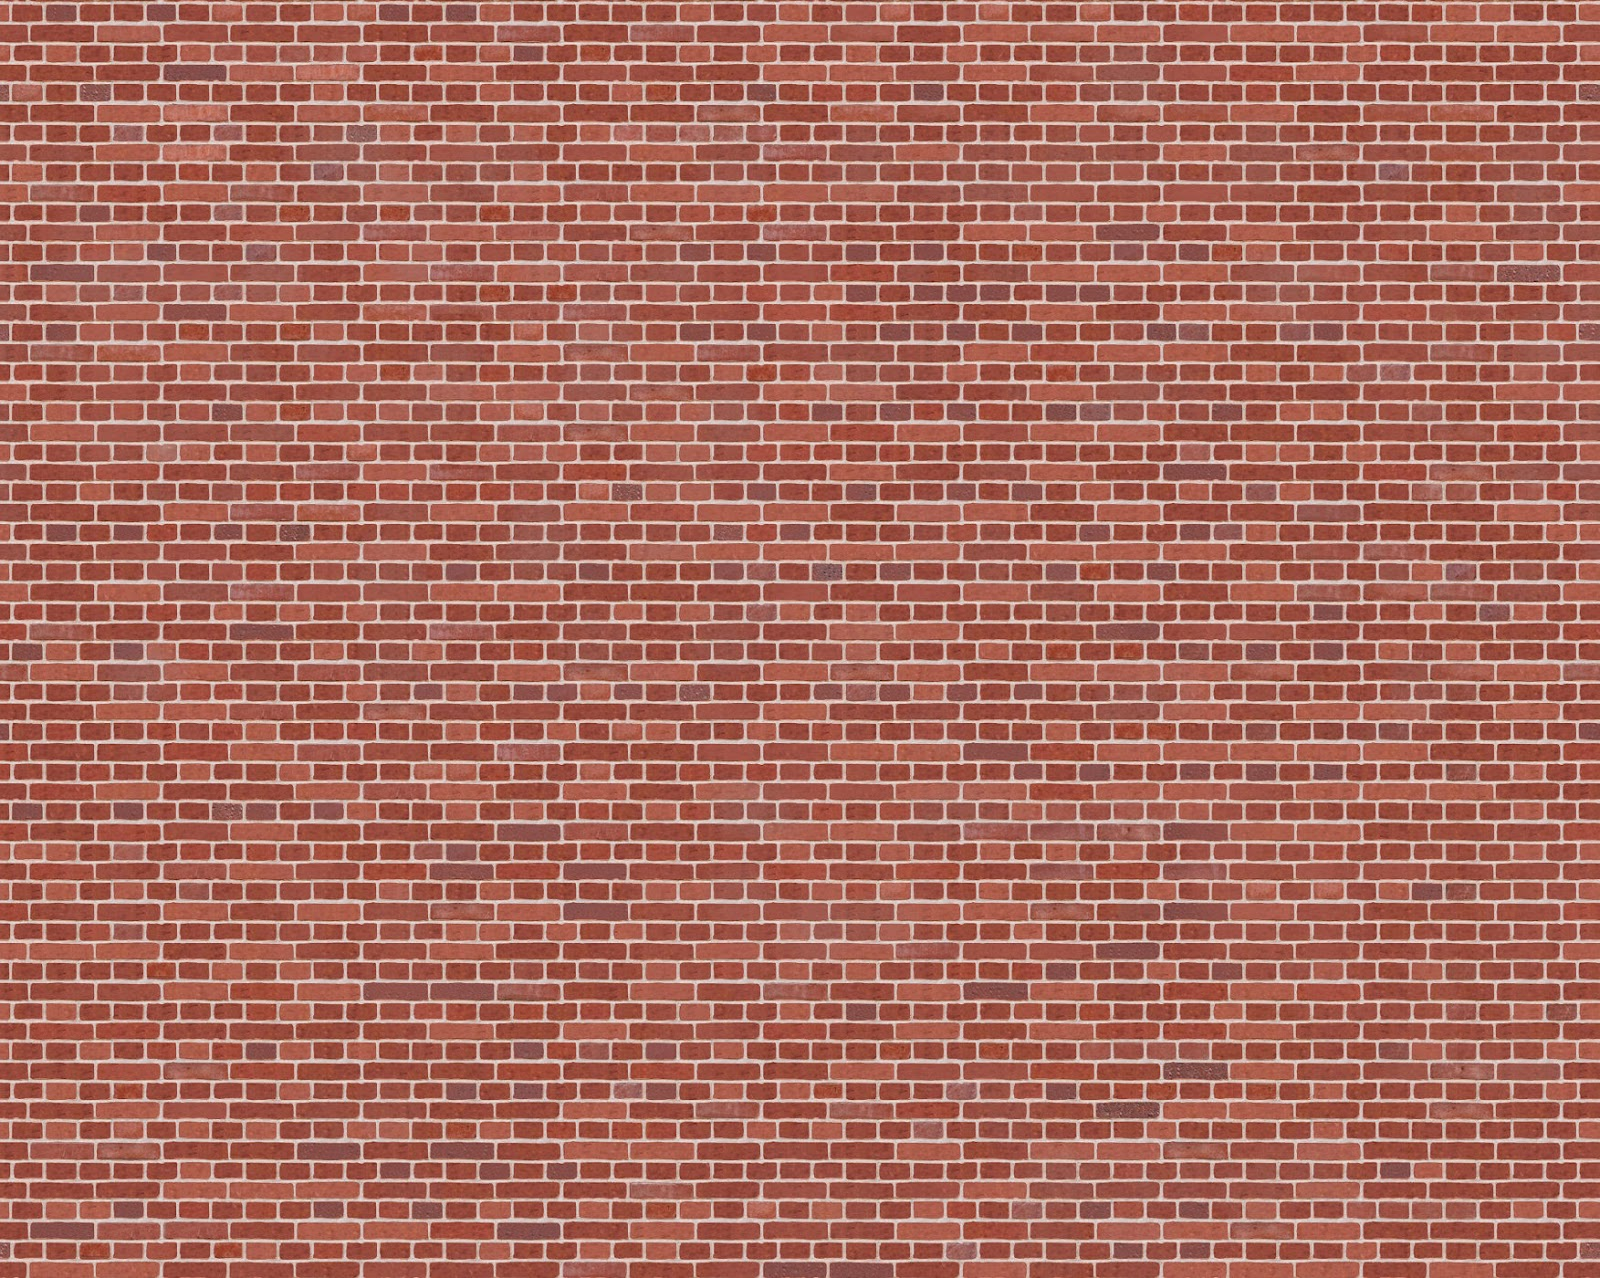 English Pattern Brick Textures Brown Seamless